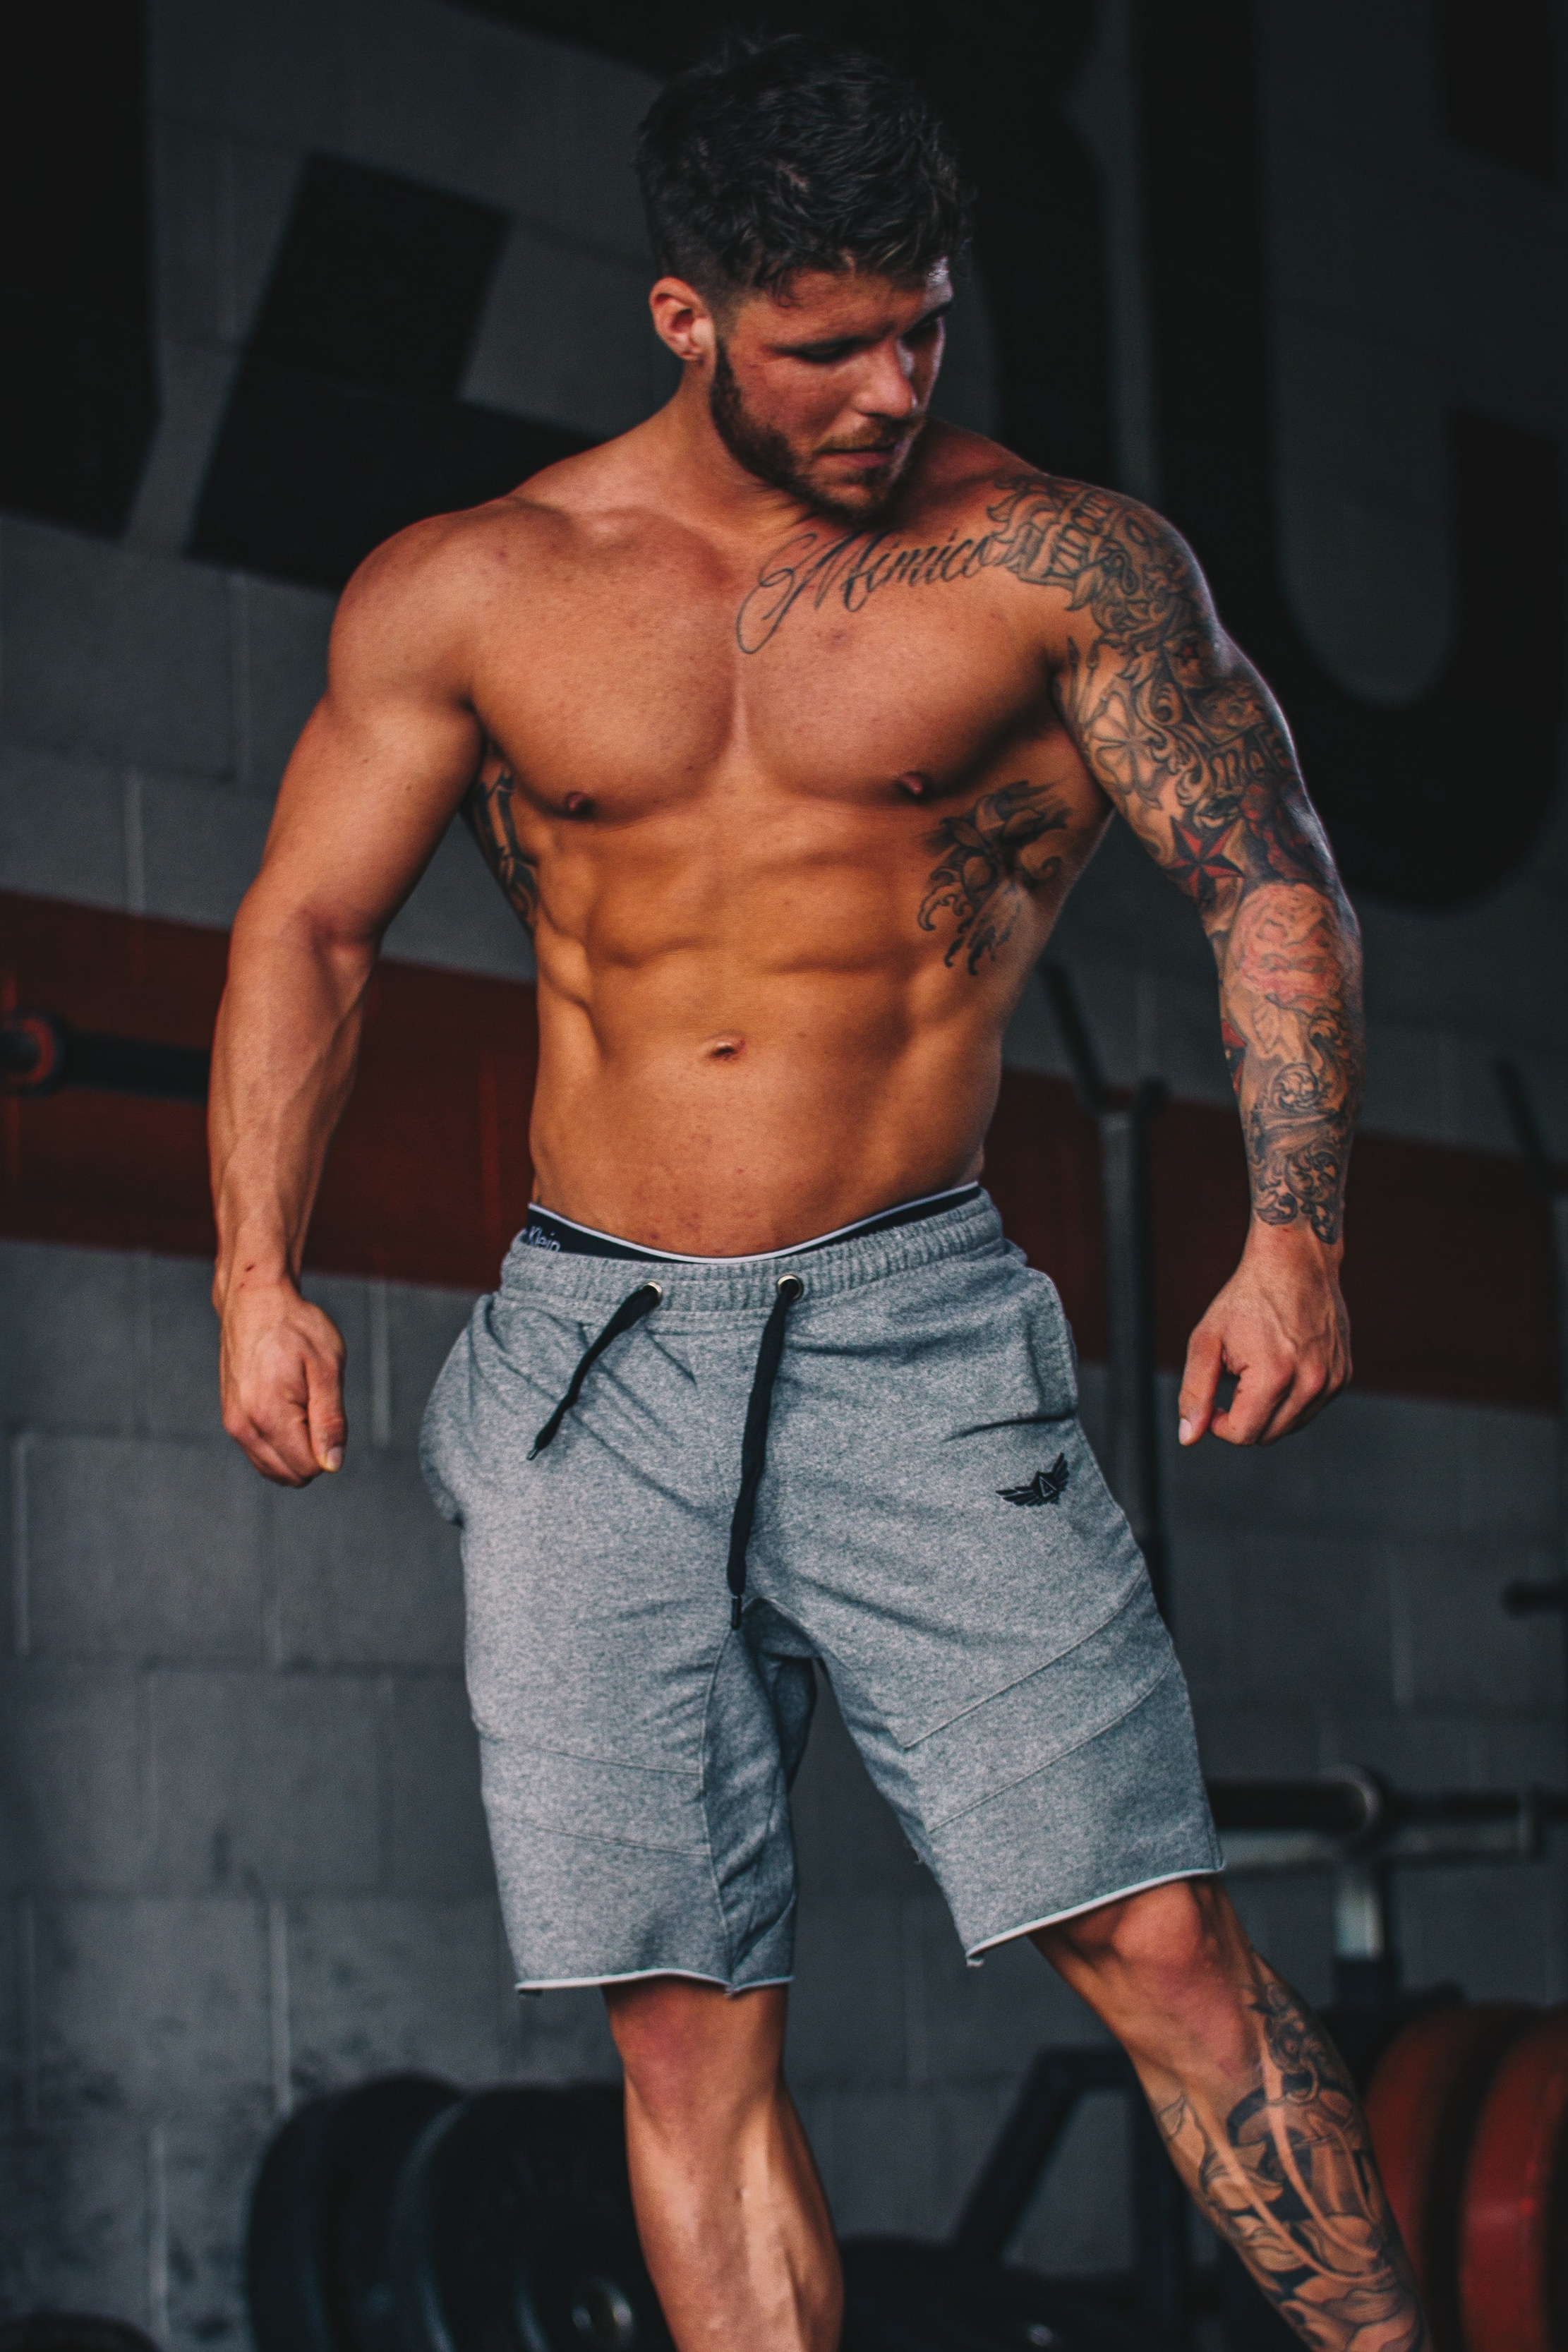 Garrett is a full-time certified personal training specialist, Precision nutrition coach and nutritionist specializing in body transformations for both men and women of all ages. -